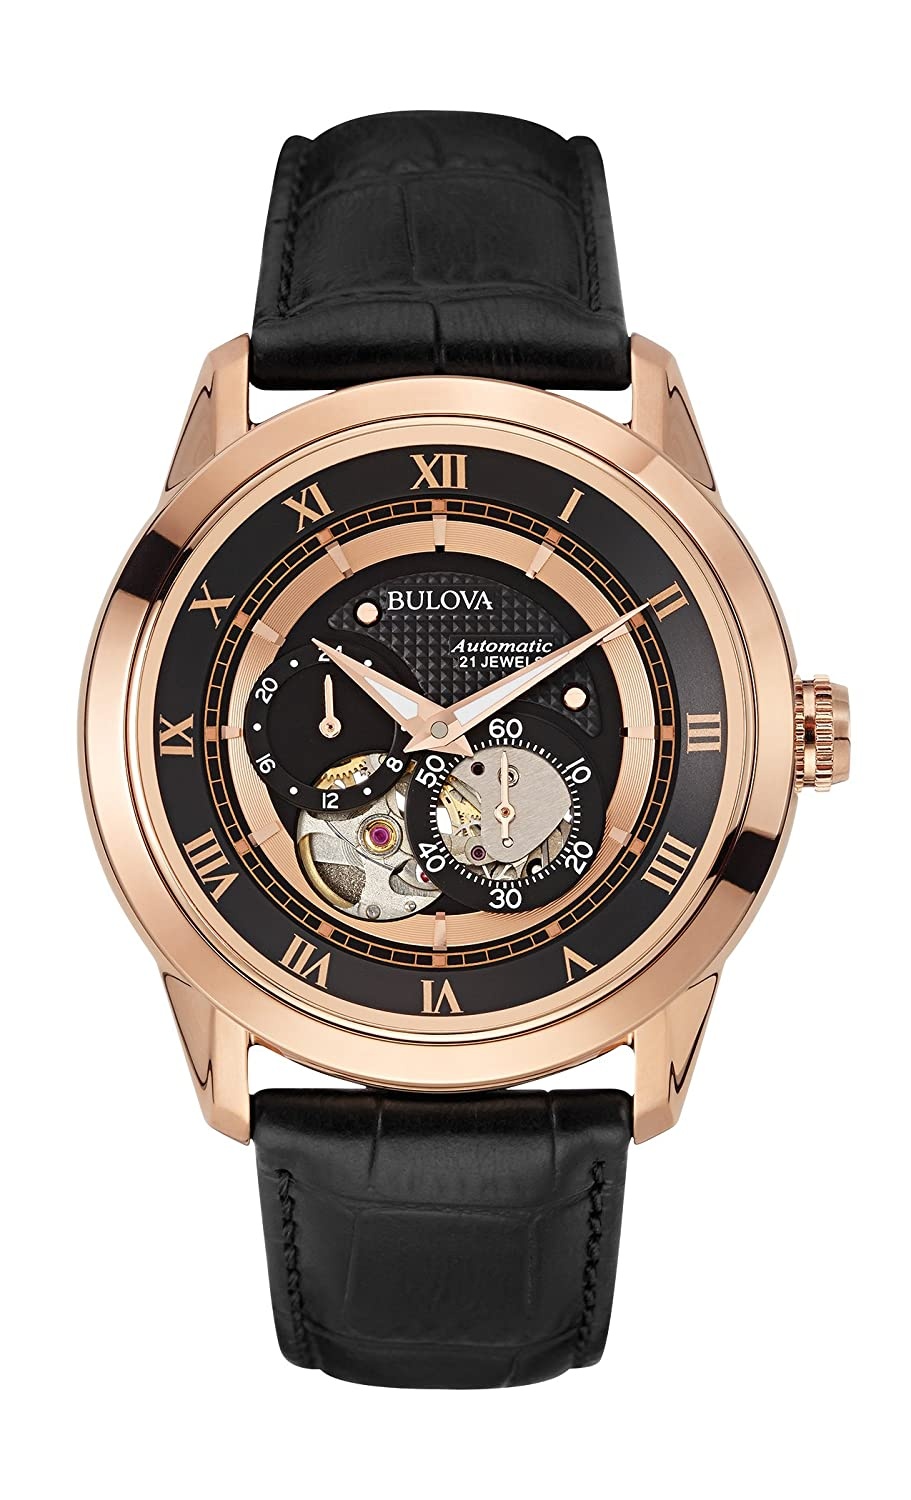 bulova automatic men s watch black dial analogue display and bulova automatic men s watch black dial analogue display and black leather strap 97a116 amazon co uk watches